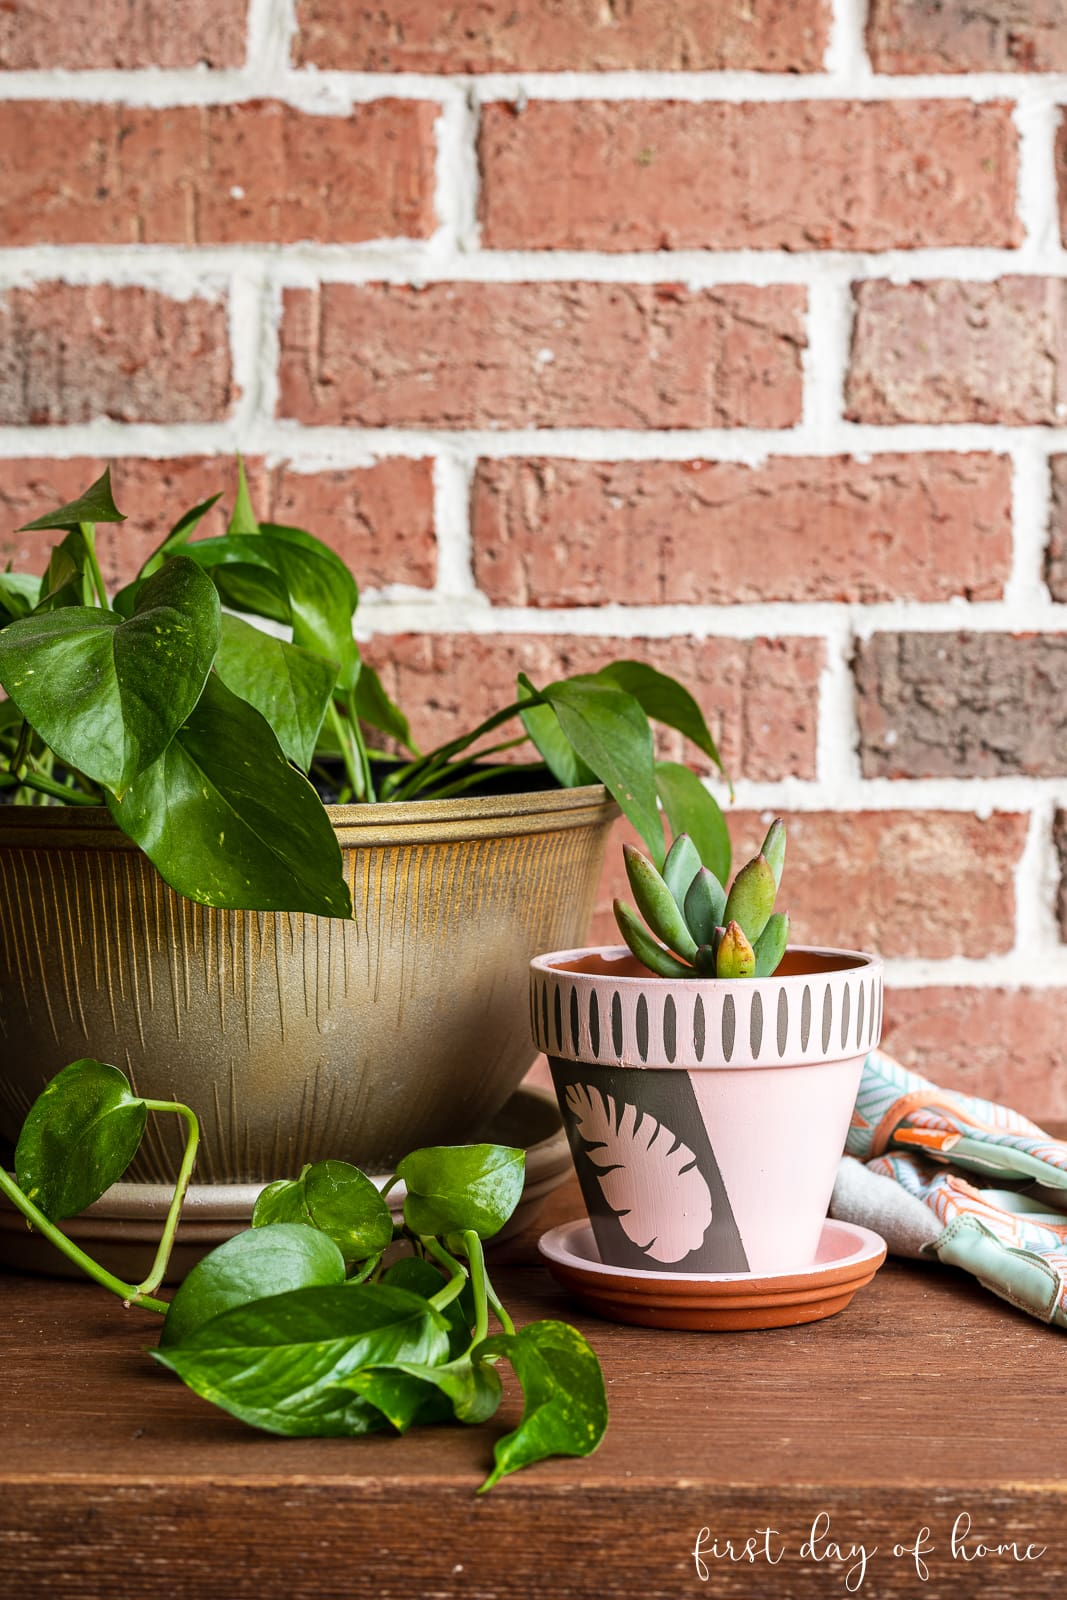 Painted flower pot with stencil design and succulent plant next to house plant